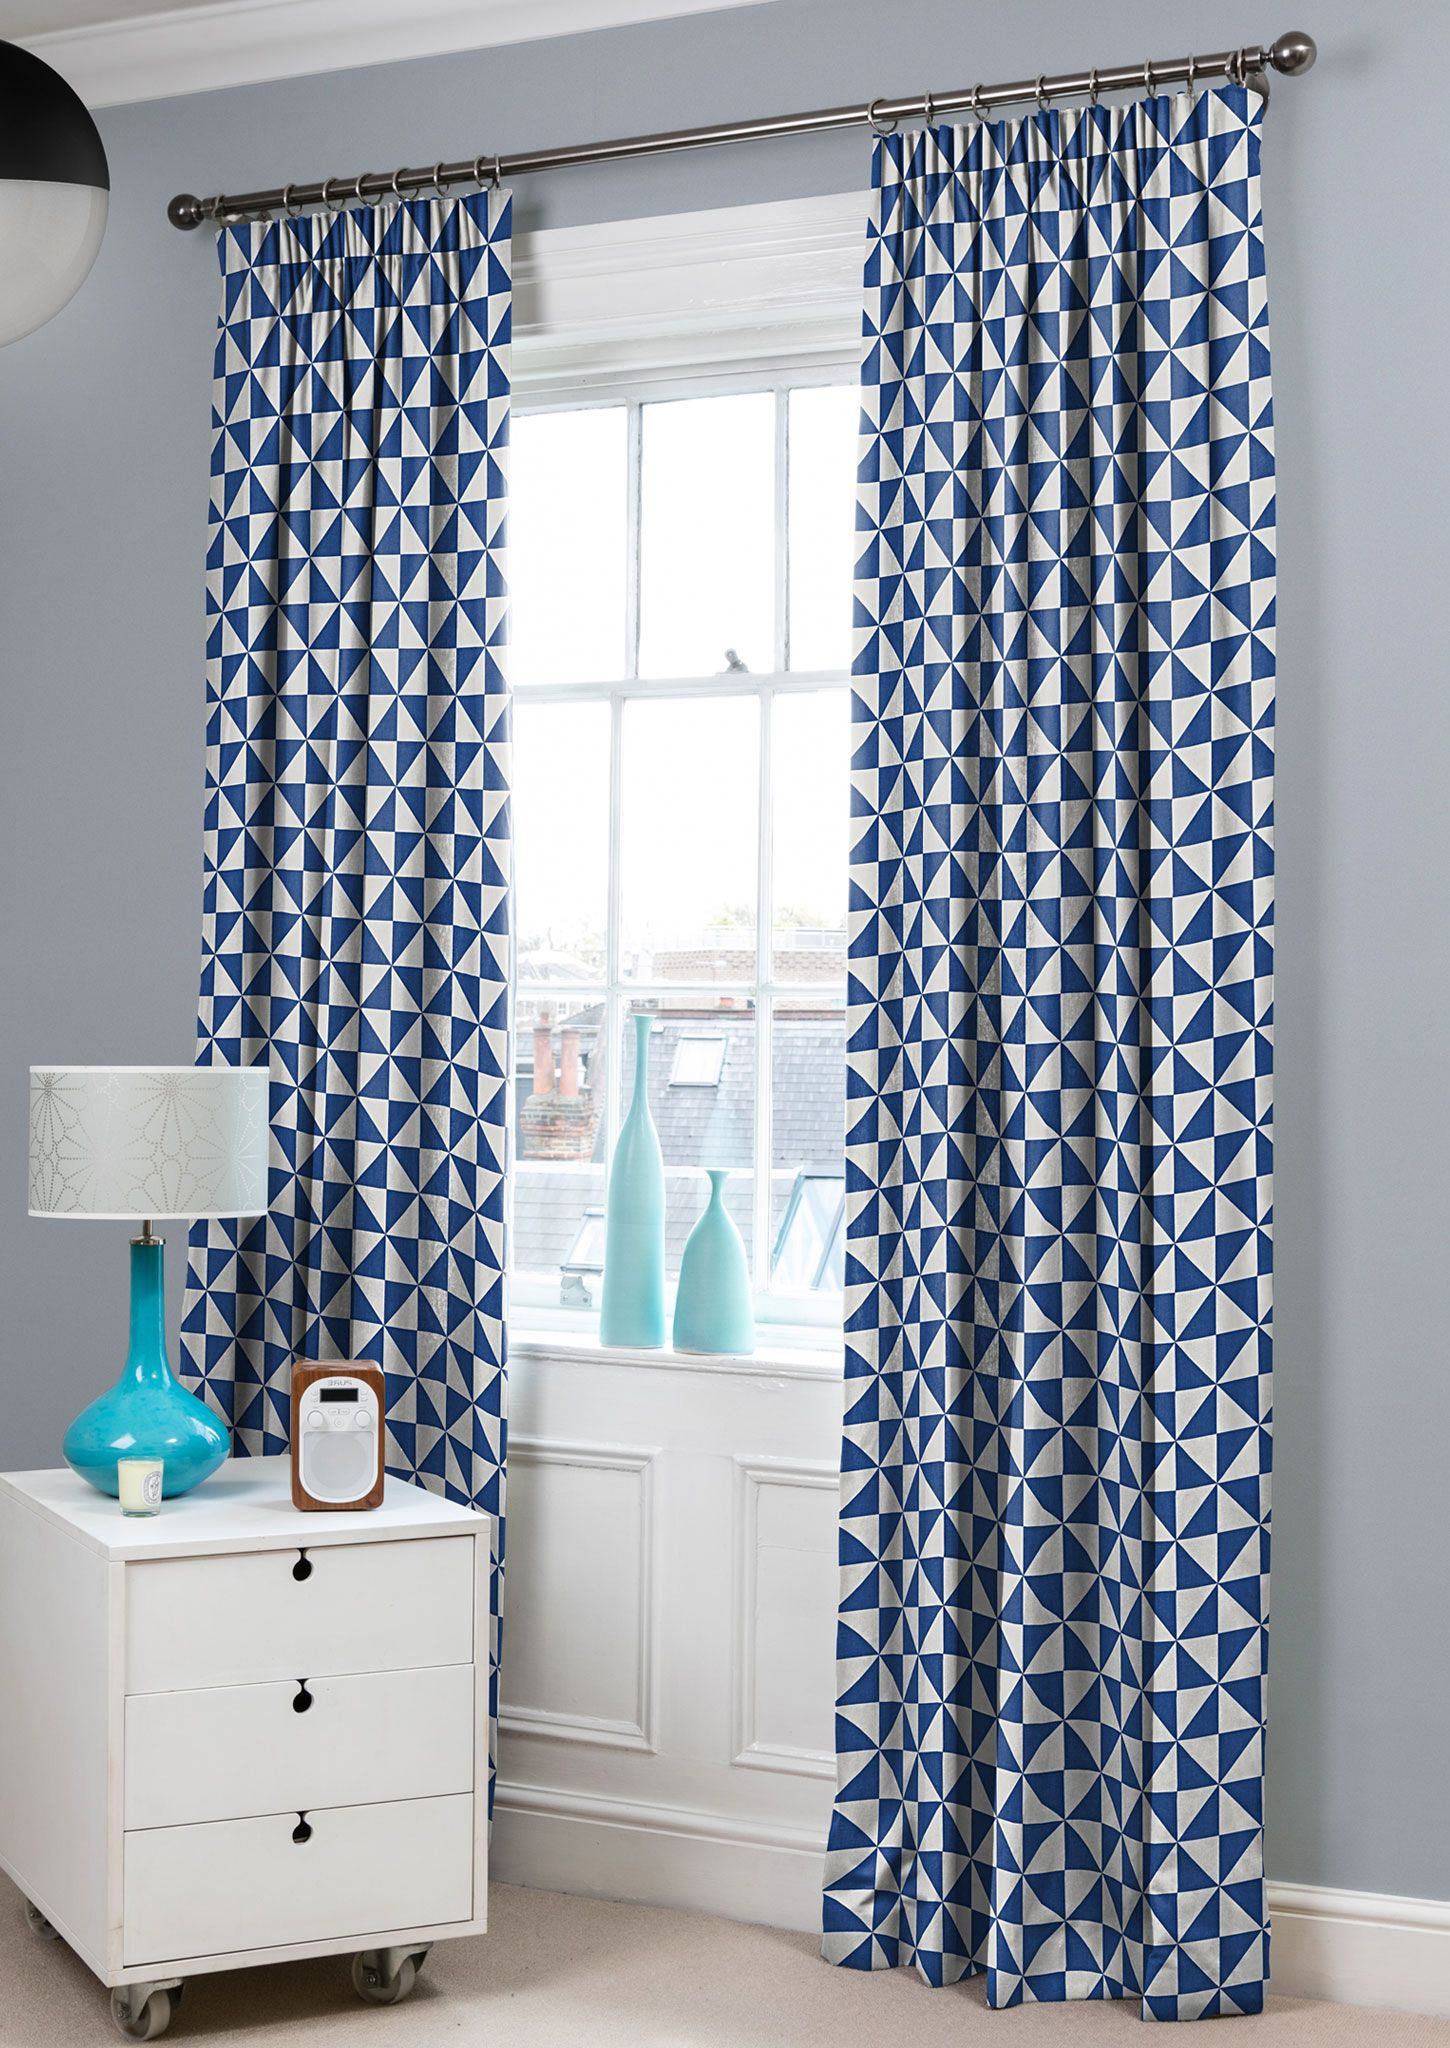 Moderne Polar - Eclectic geometric curtain fabric in a mix ...